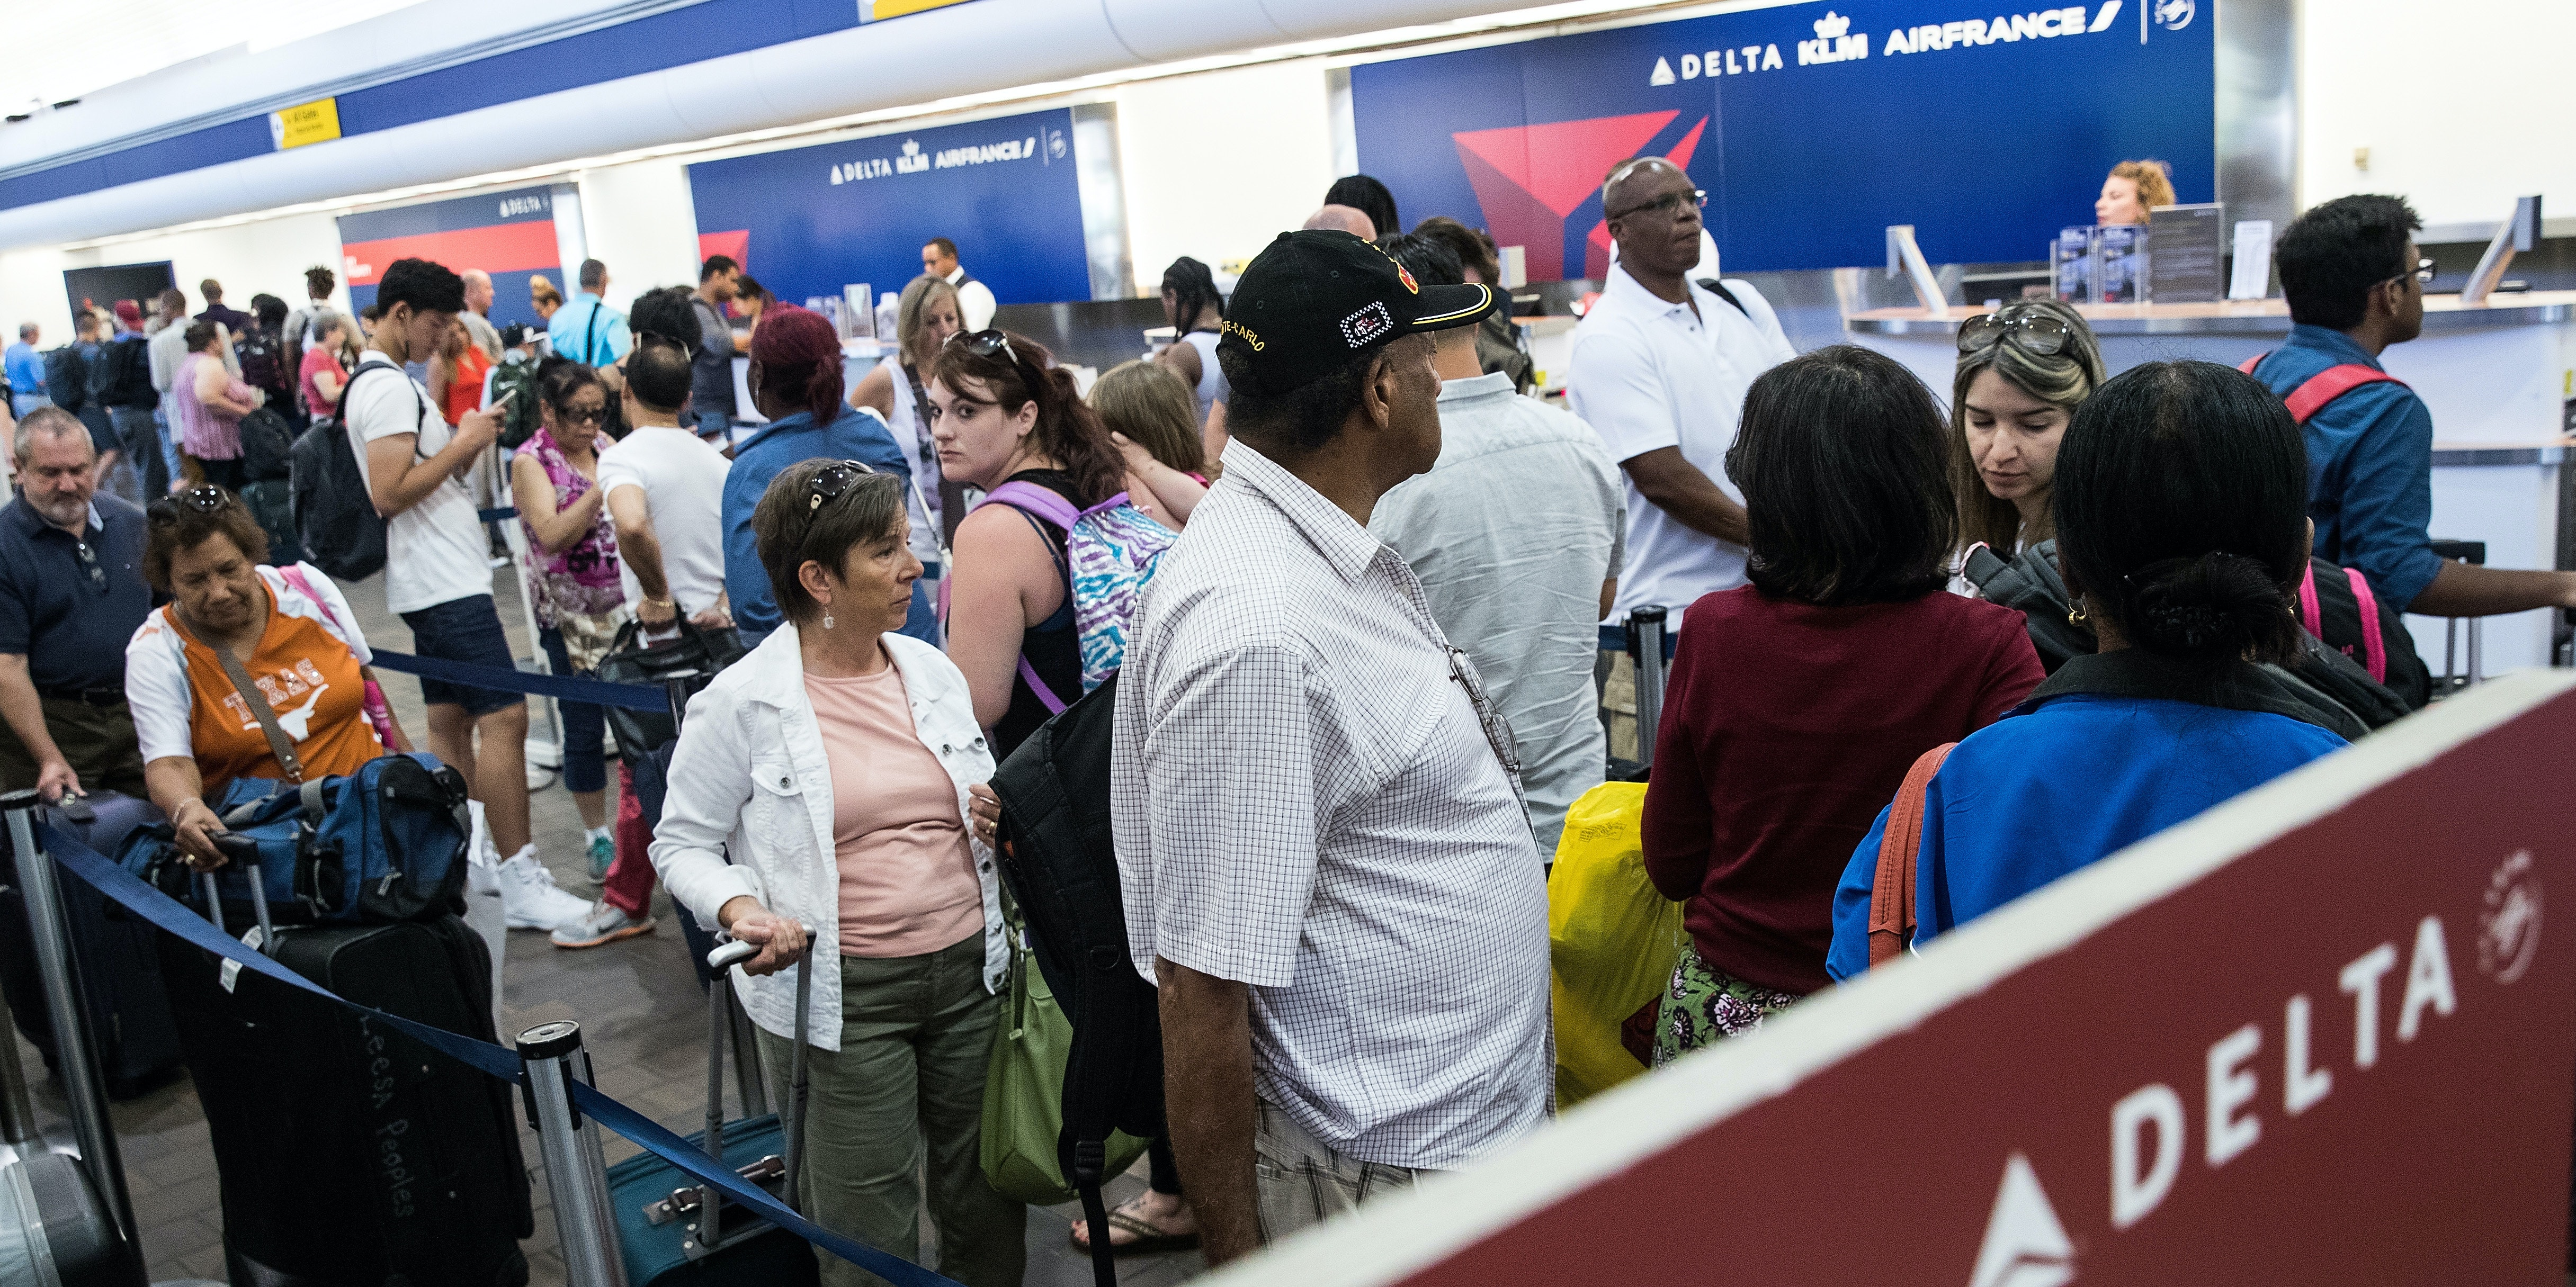 NEW YORK, NY - AUGUST 8: Travelers wait in line at the Delta check-in counter at LaGuardia Airport , August 8, 2016 in the Queens borough of New York City. Delta flights around the globe were grounded and delayed on Monday morning due to a system outage. (Photo by Drew Angerer/Getty Images)